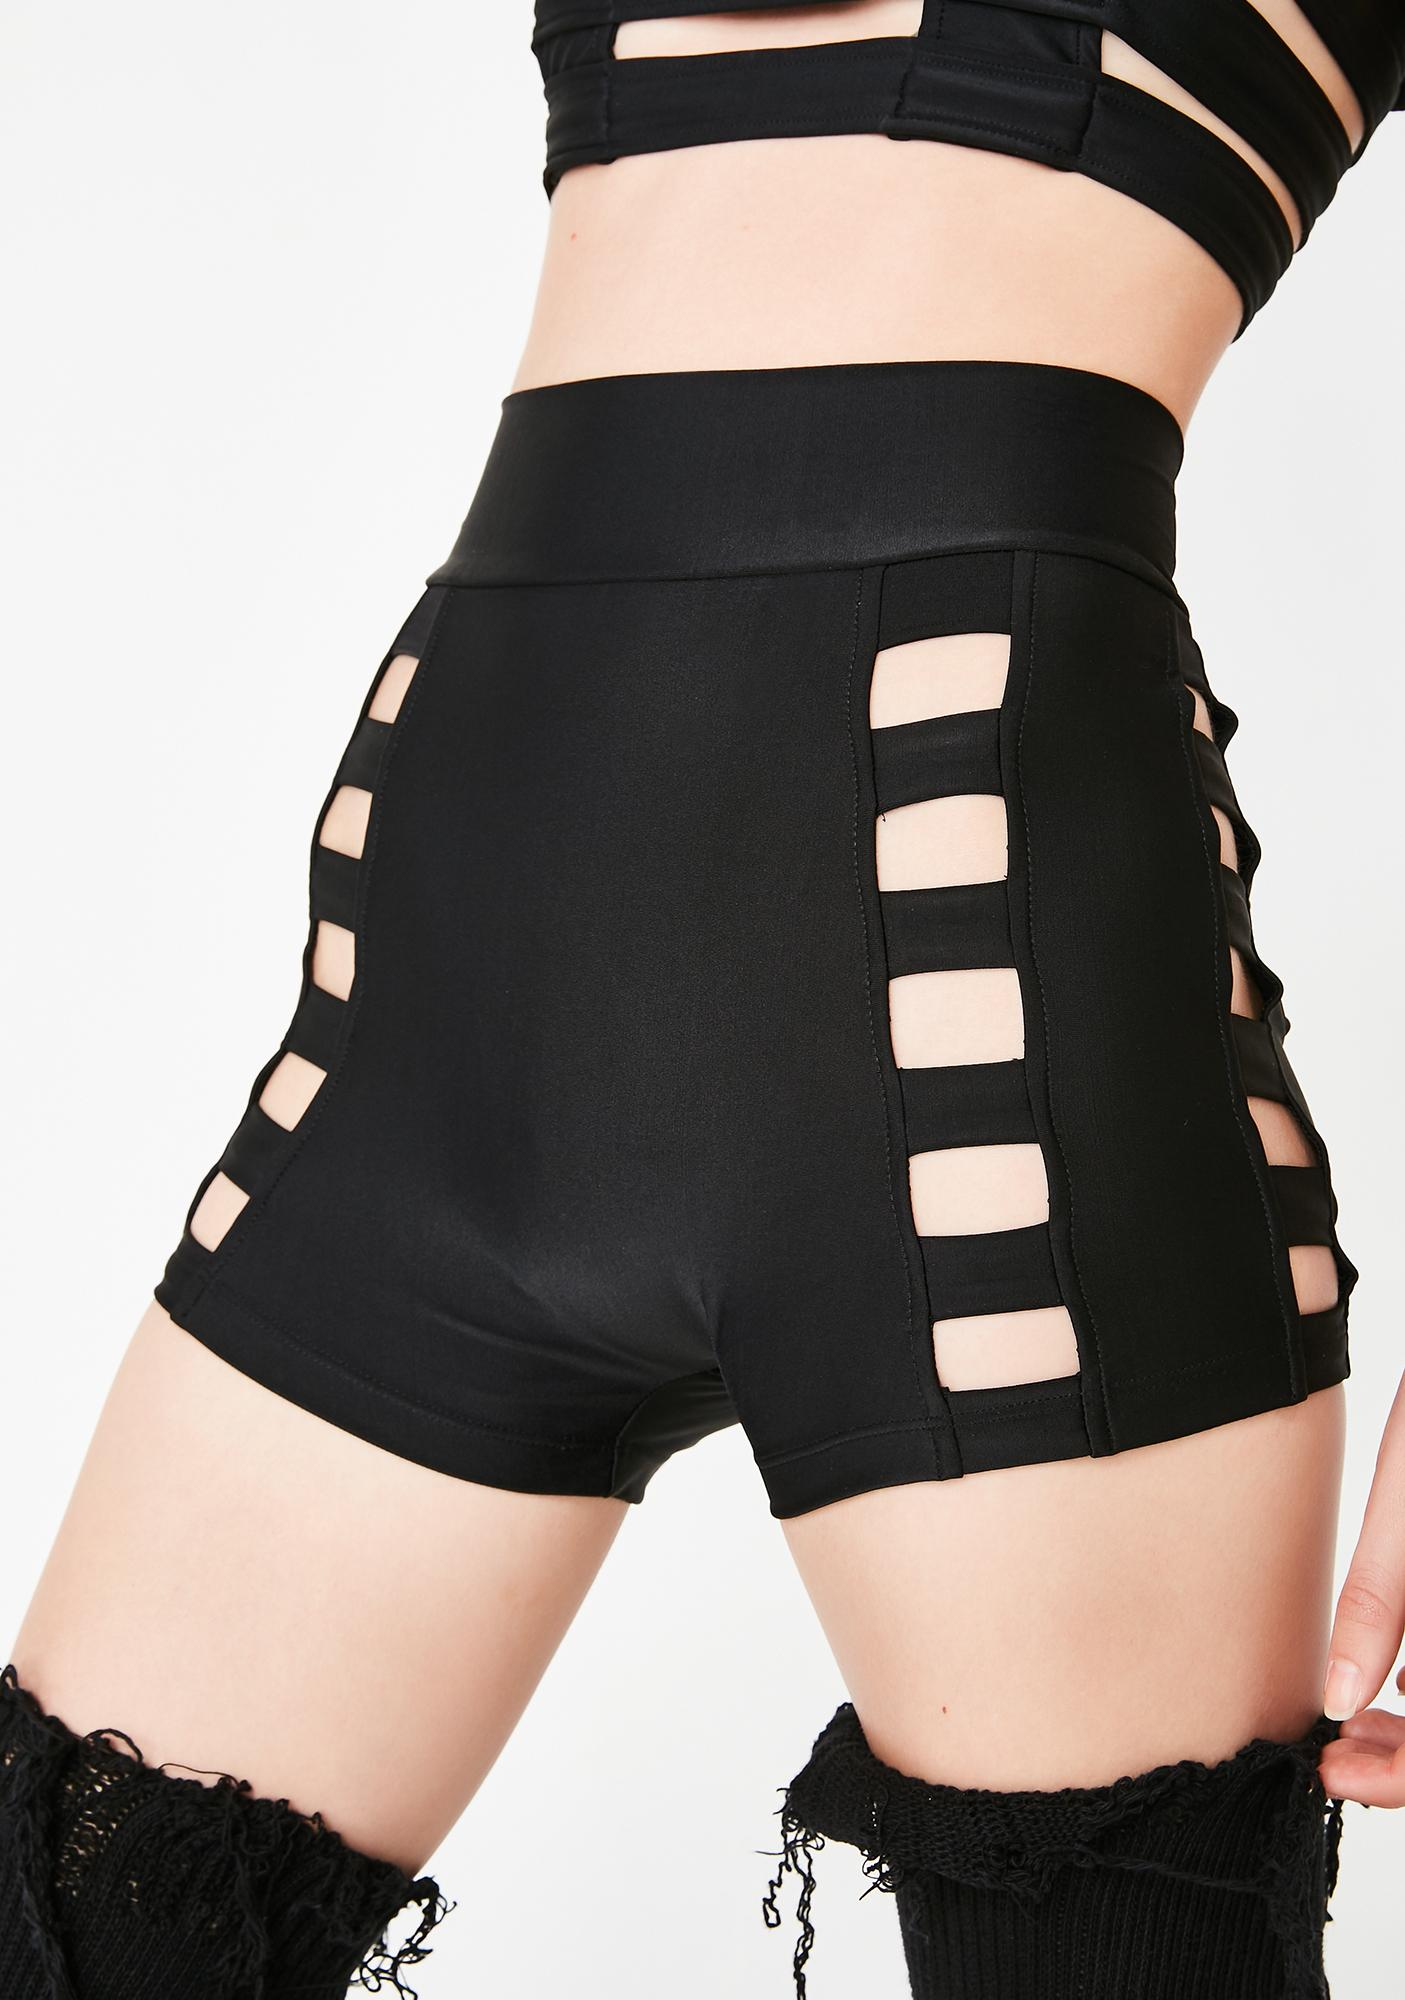 Five and Diamond Black Cage Shorts